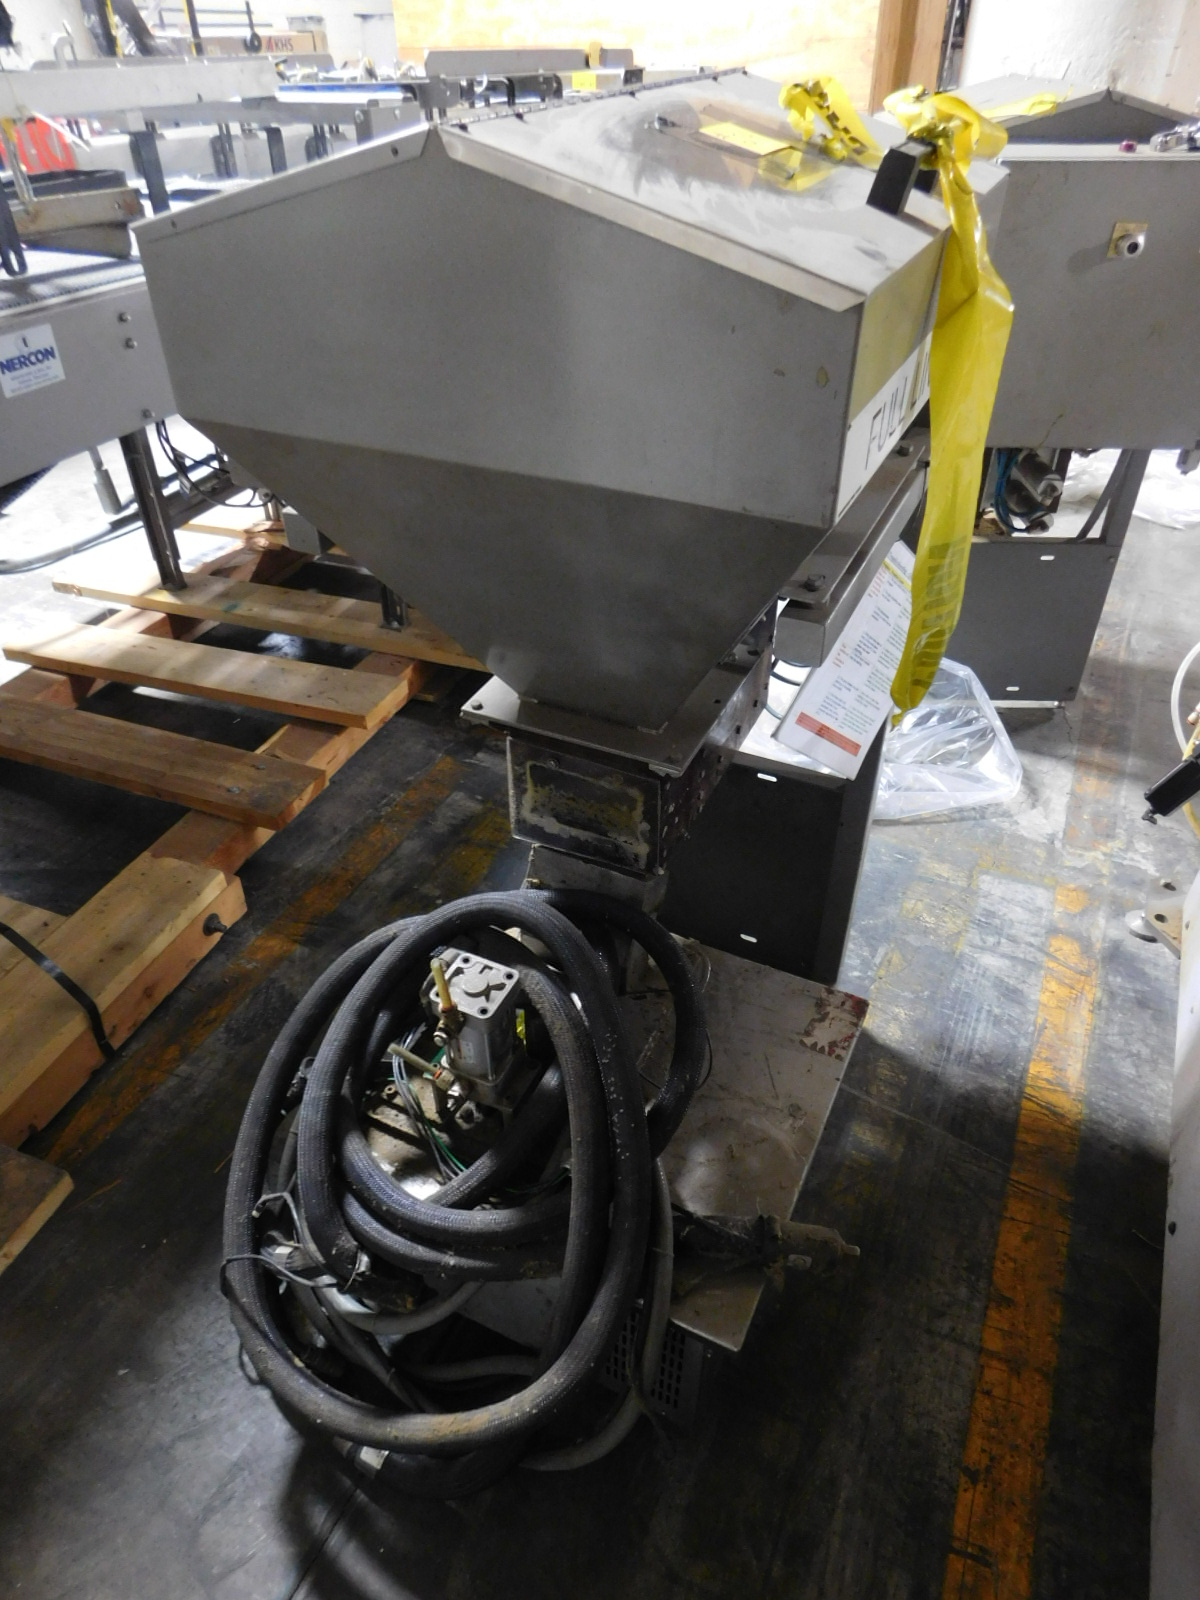 Lot 24 - Moem Glue Glue Melter ,240V,15AMPS, PHASE 3, M3A PF106-BIFQ,SN:1074,MFG. 3-2004,Top Sealer :